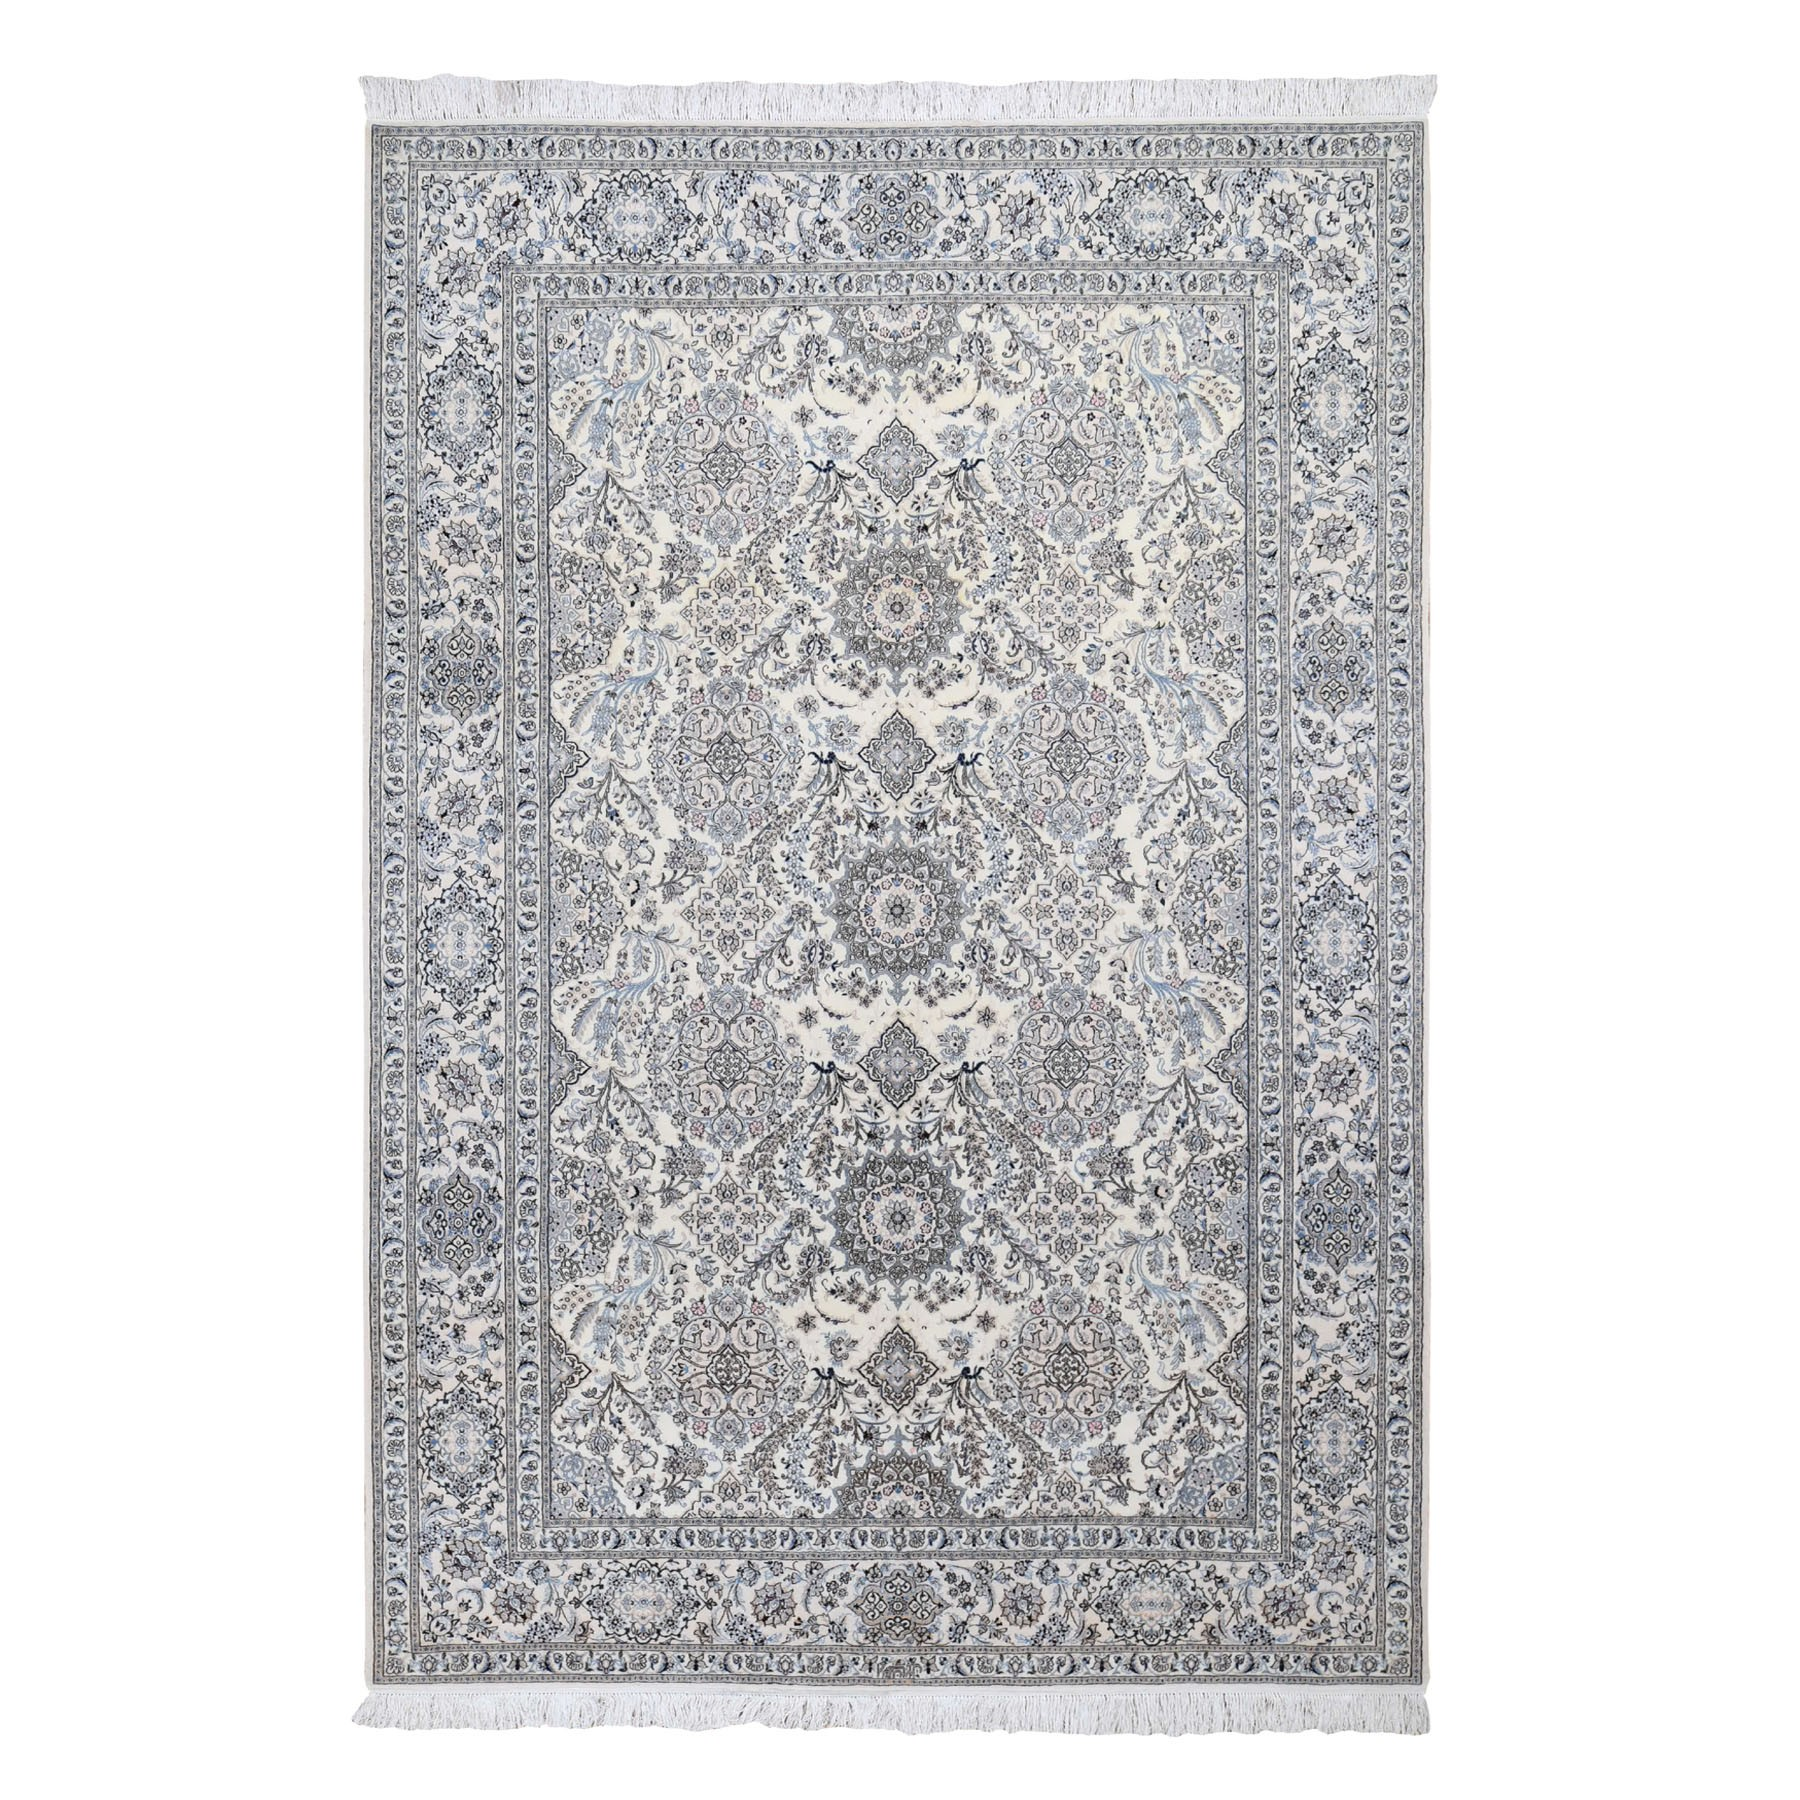 Pirniakan Collection Hand Knotted Ivory Rug No: 0196378